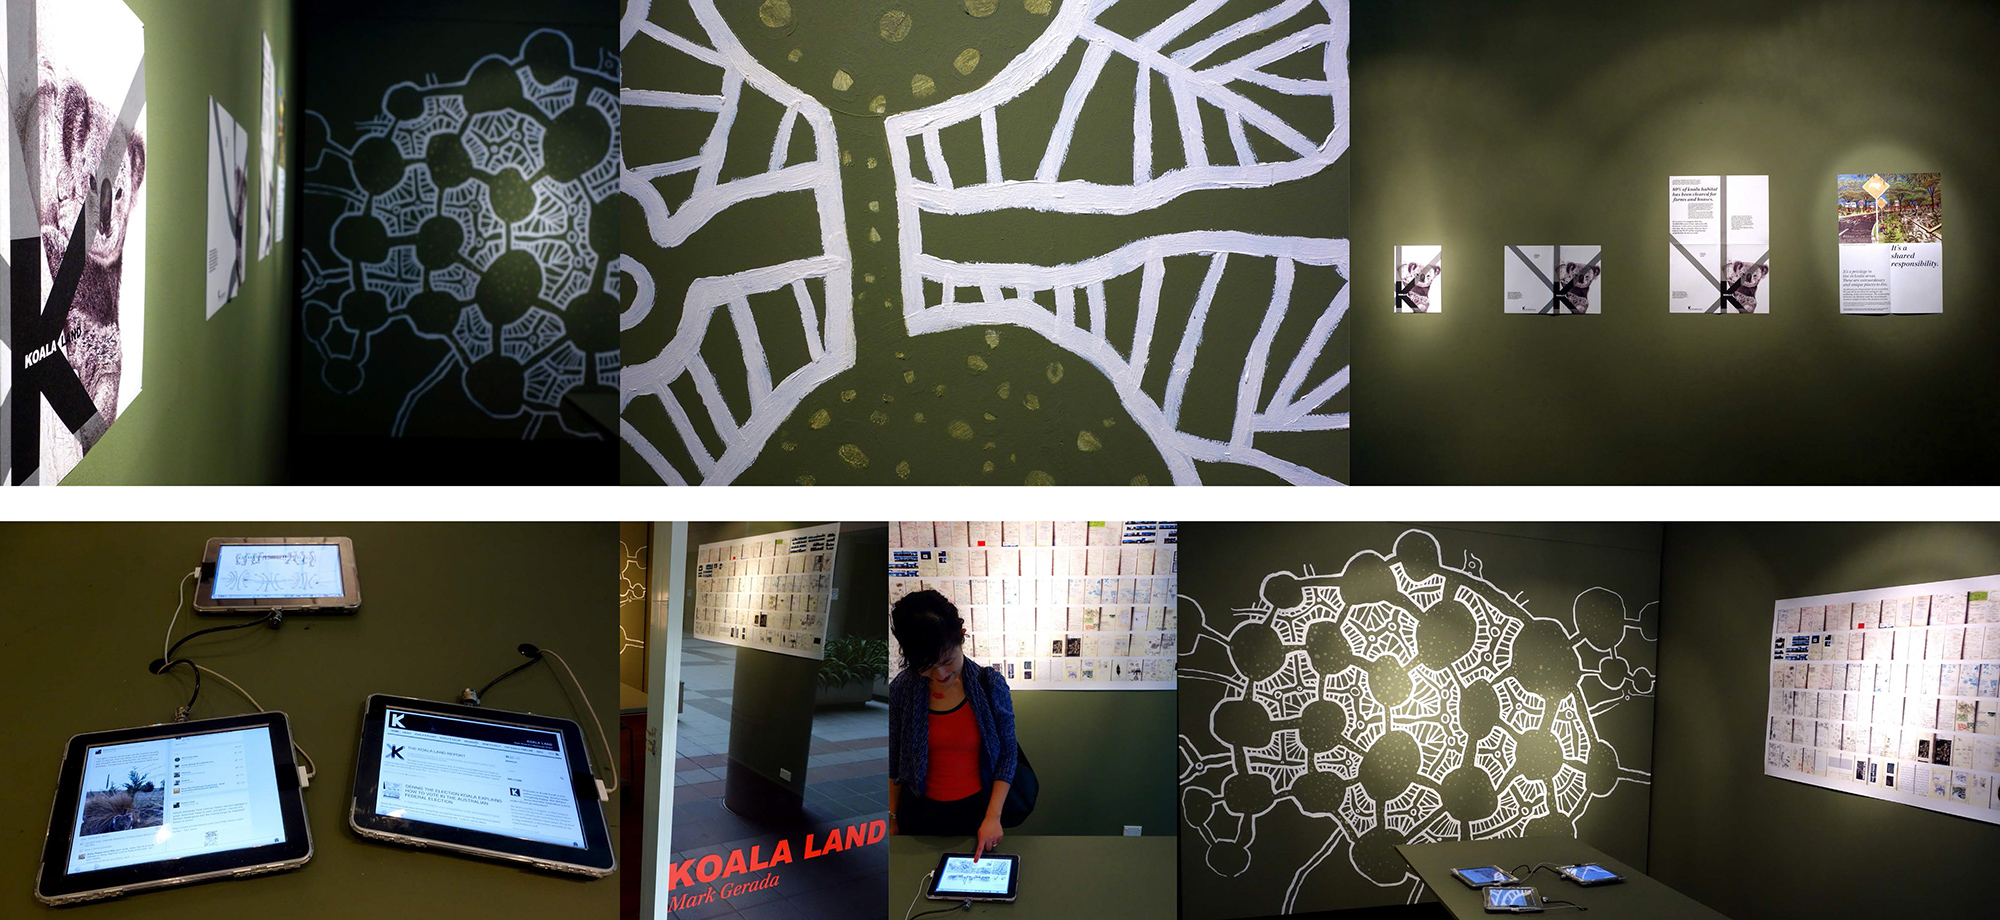 koalaland exhibition at UTS DAB LAB